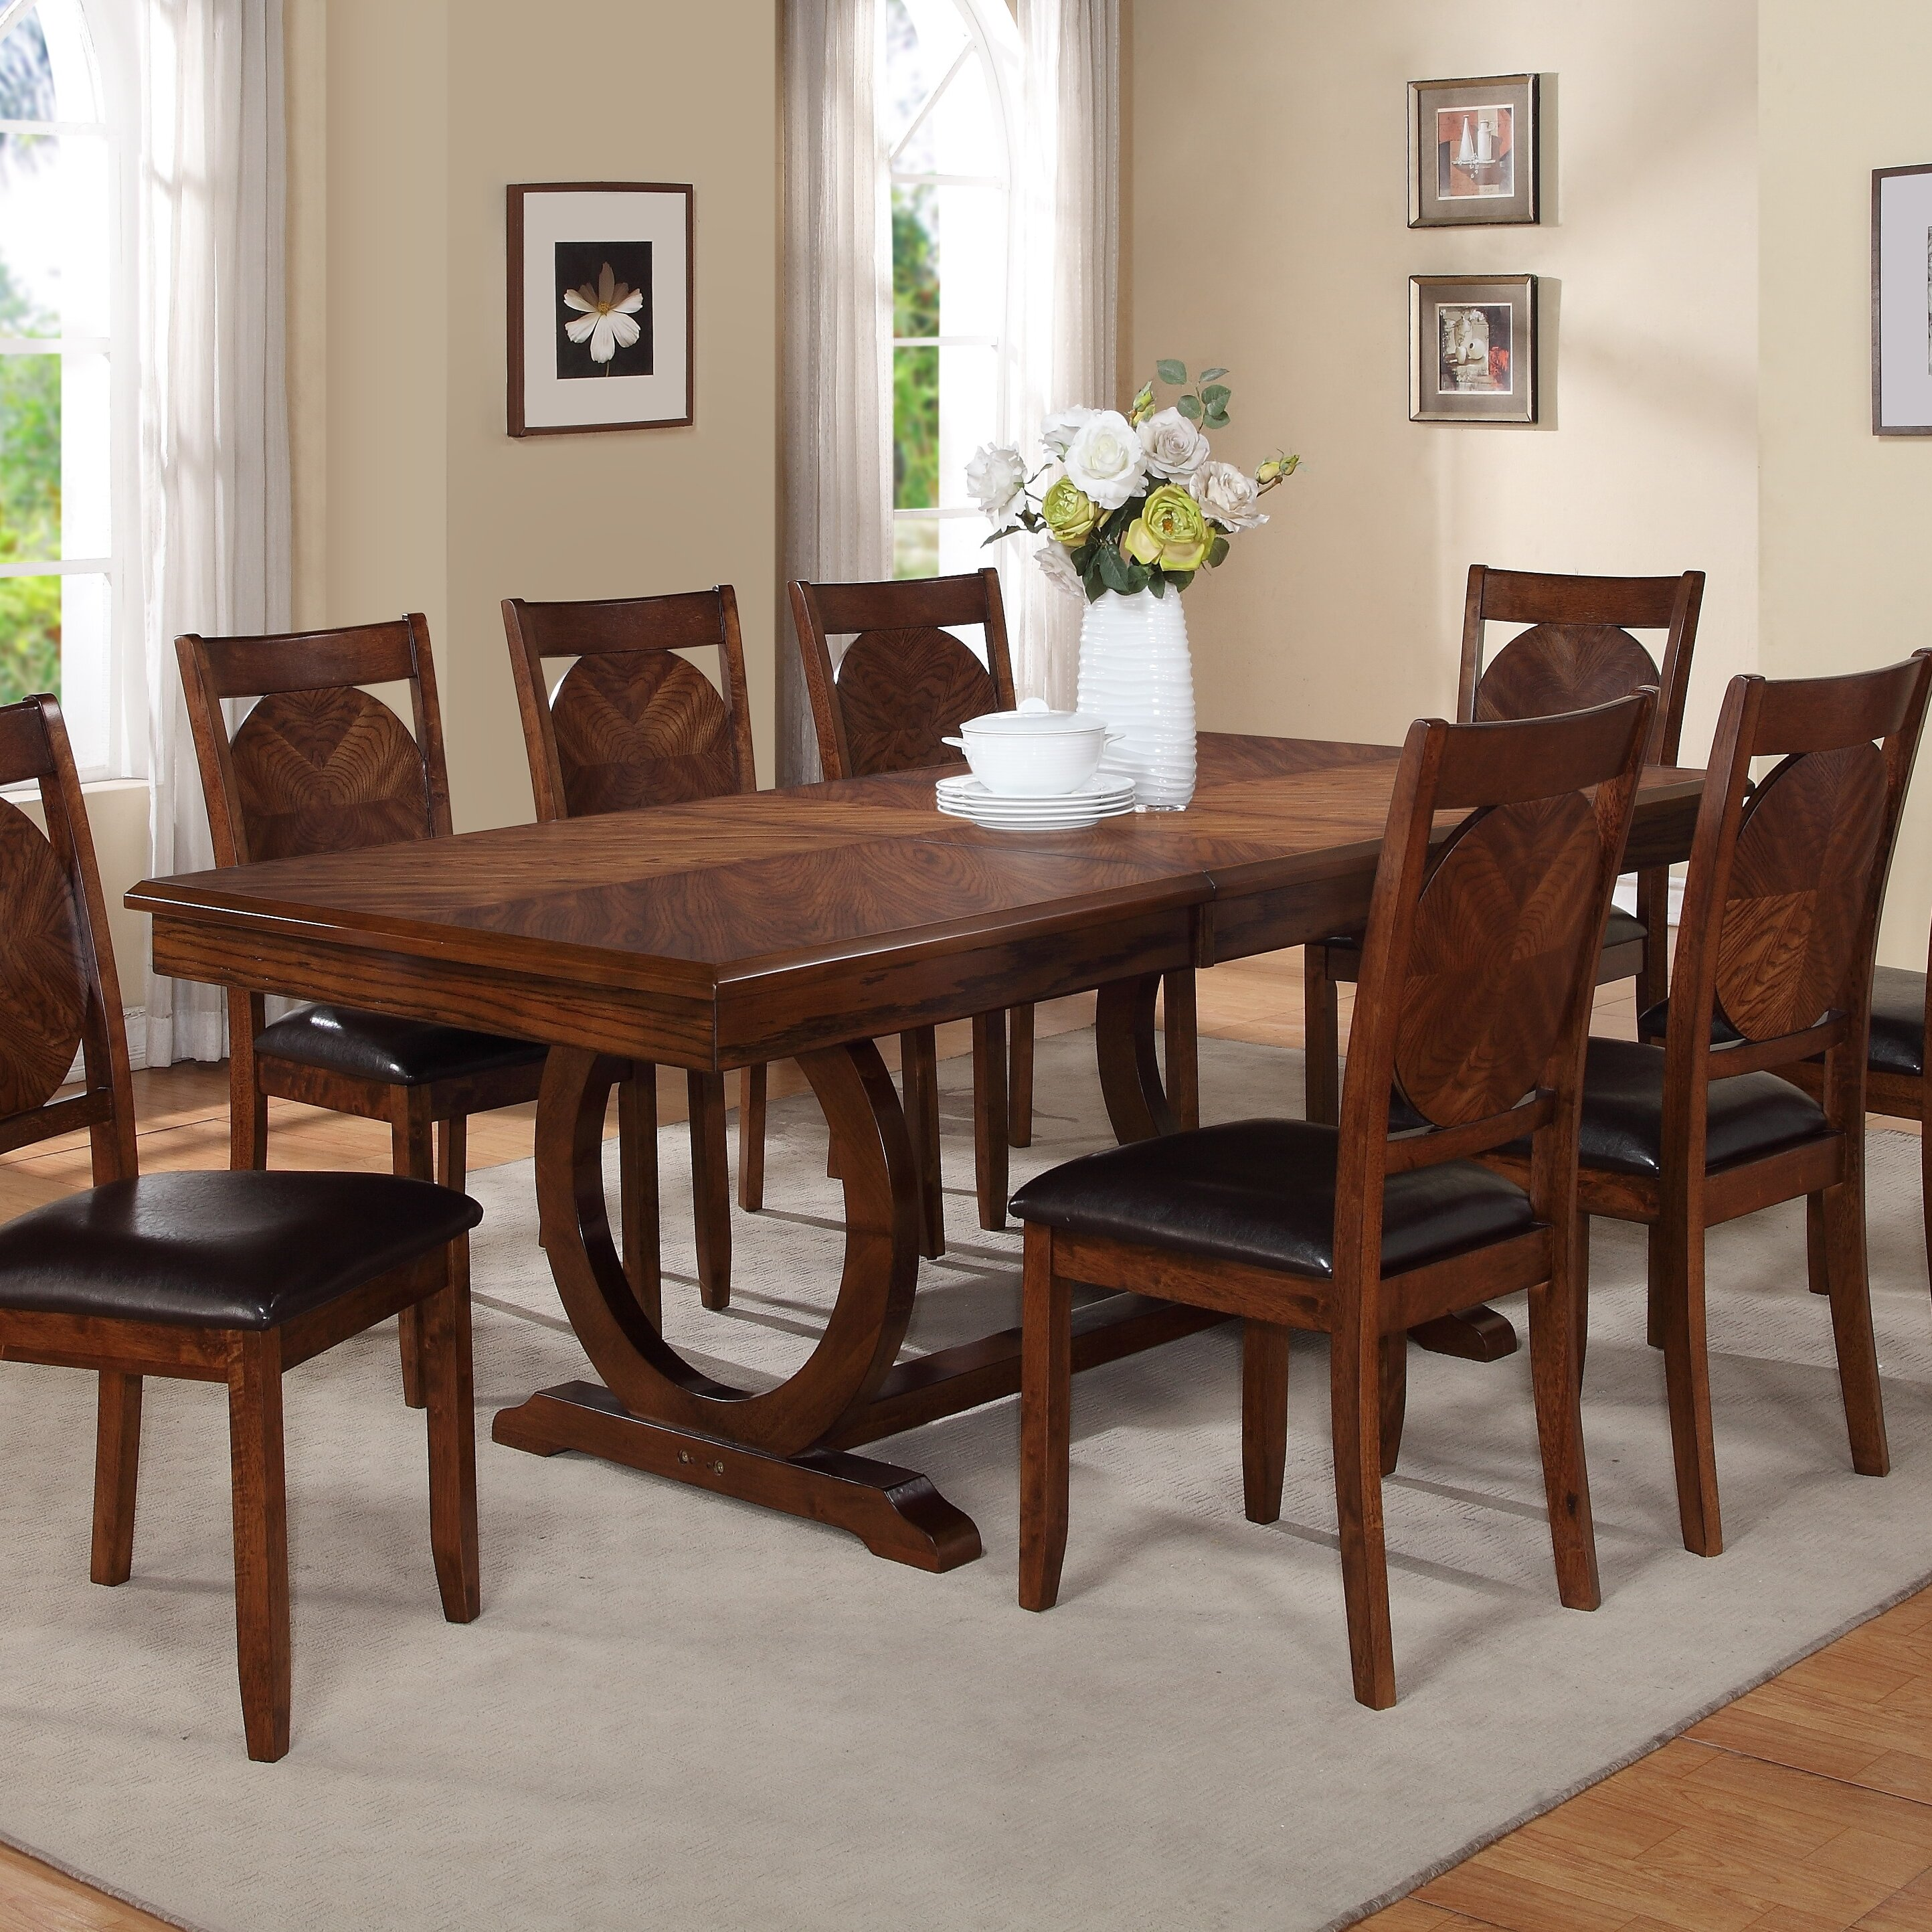 Wayfair Table: World Menagerie Kapoor Extendable Dining Table & Reviews